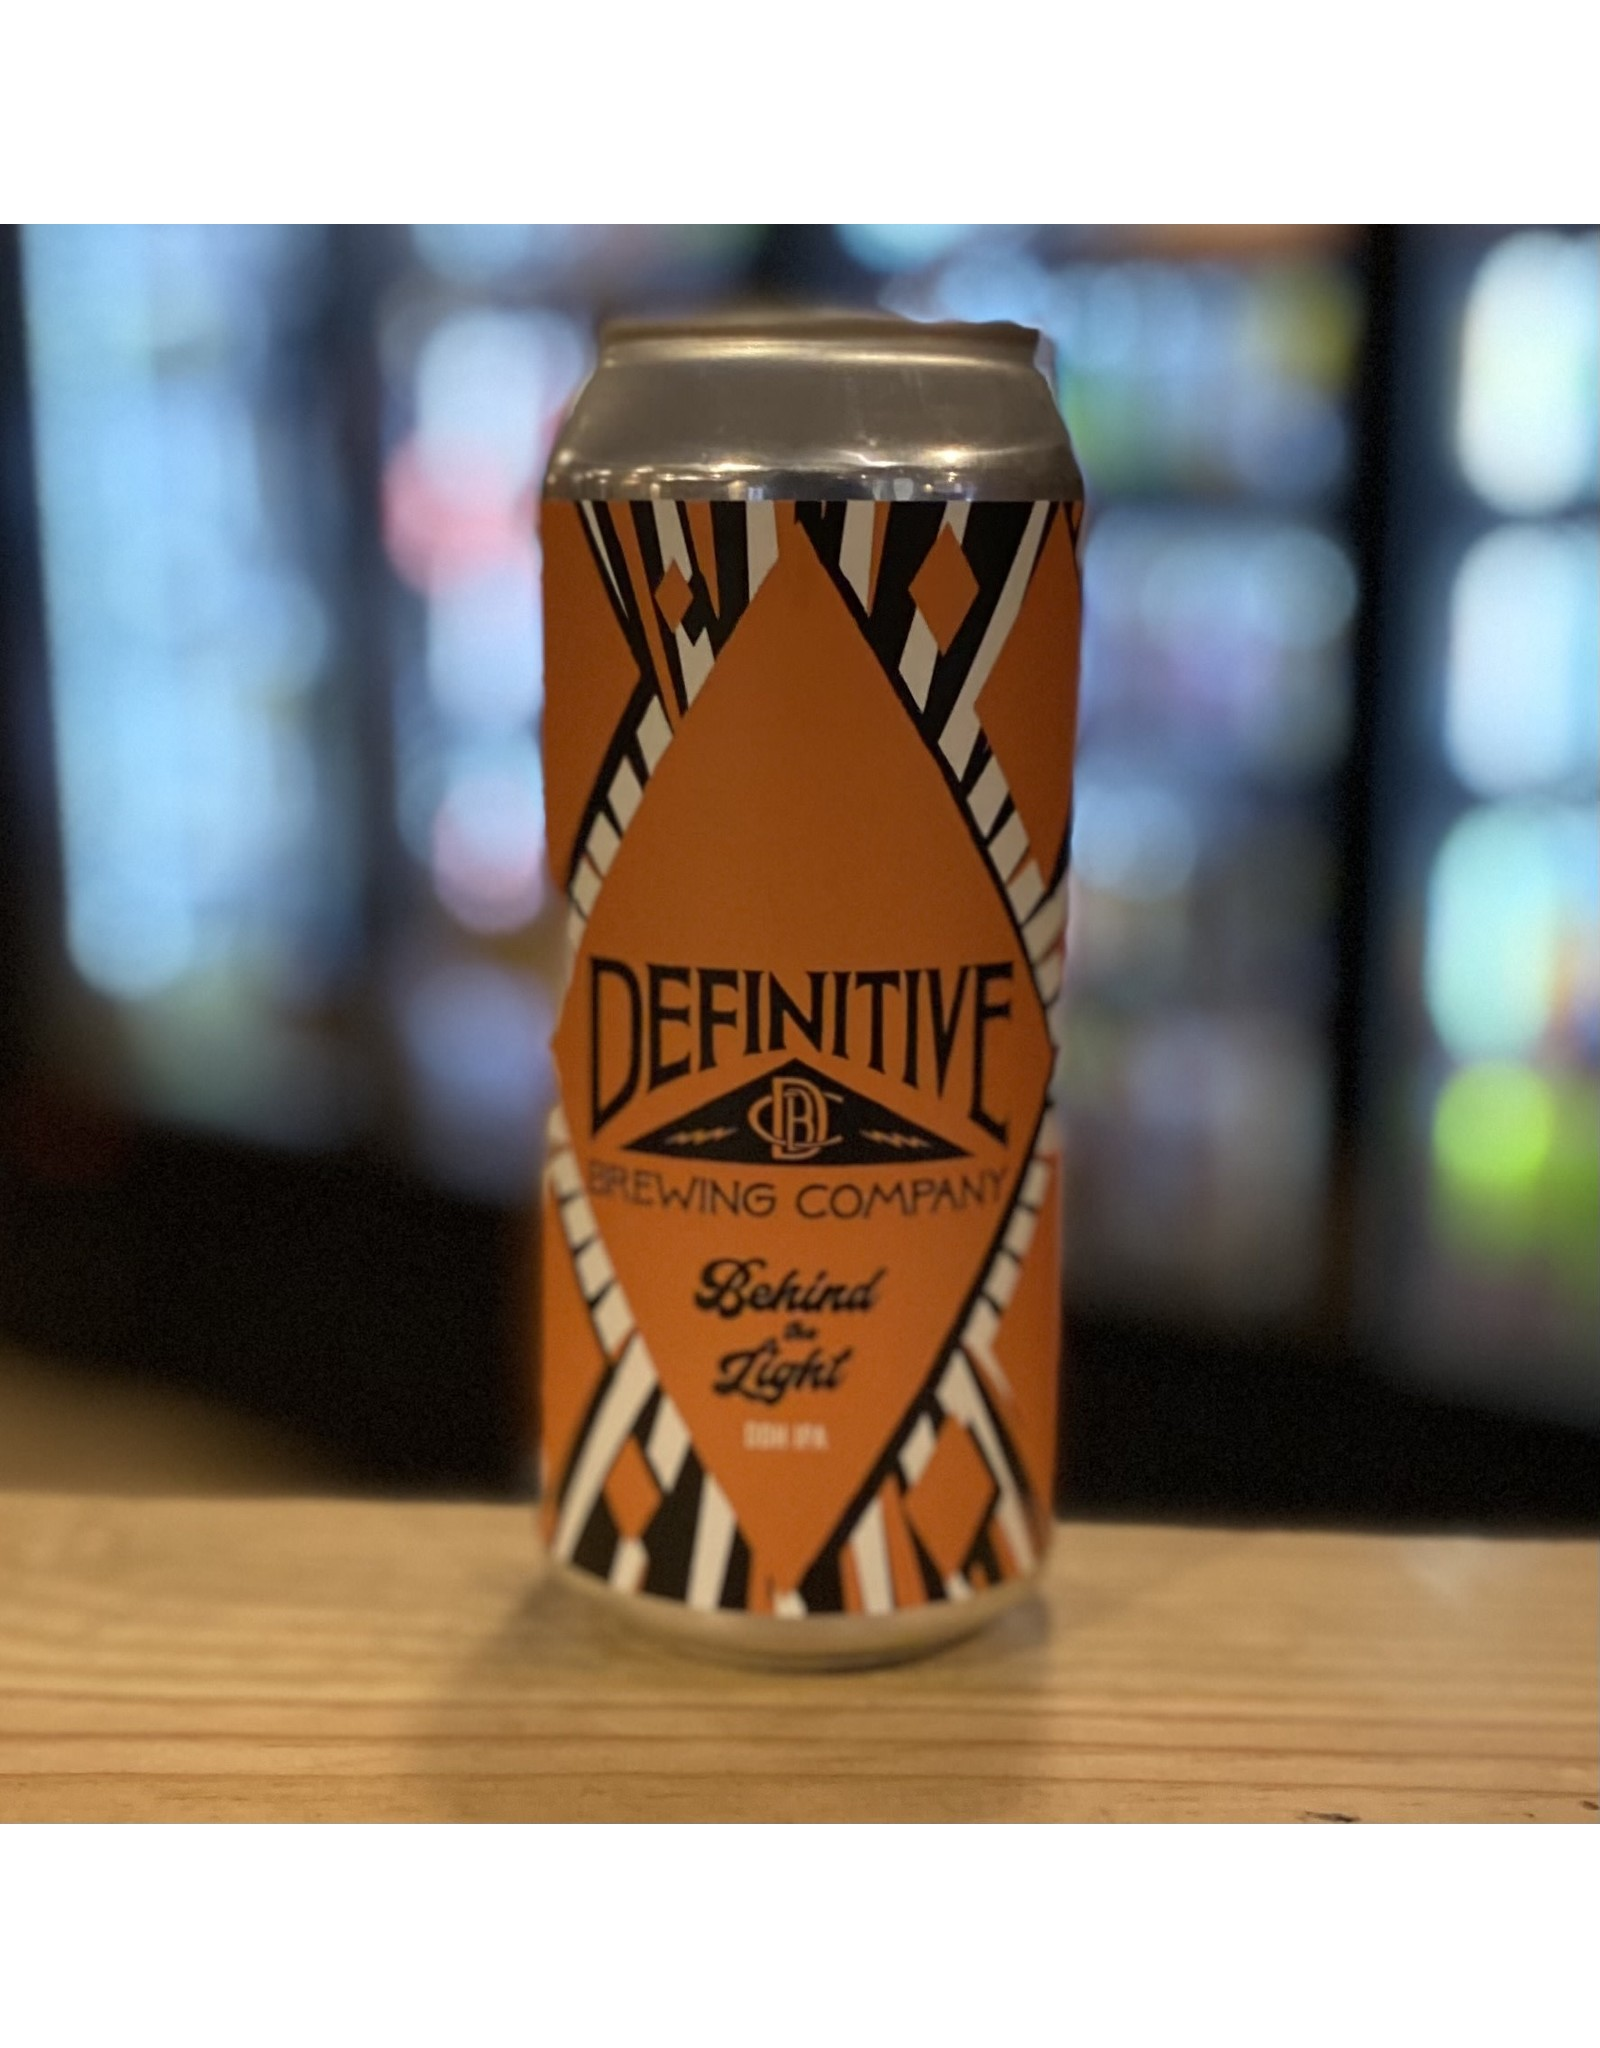 """IPA Definitive Brewing Company """"Behind the Light"""" DDH IPA - Portland, Maine"""